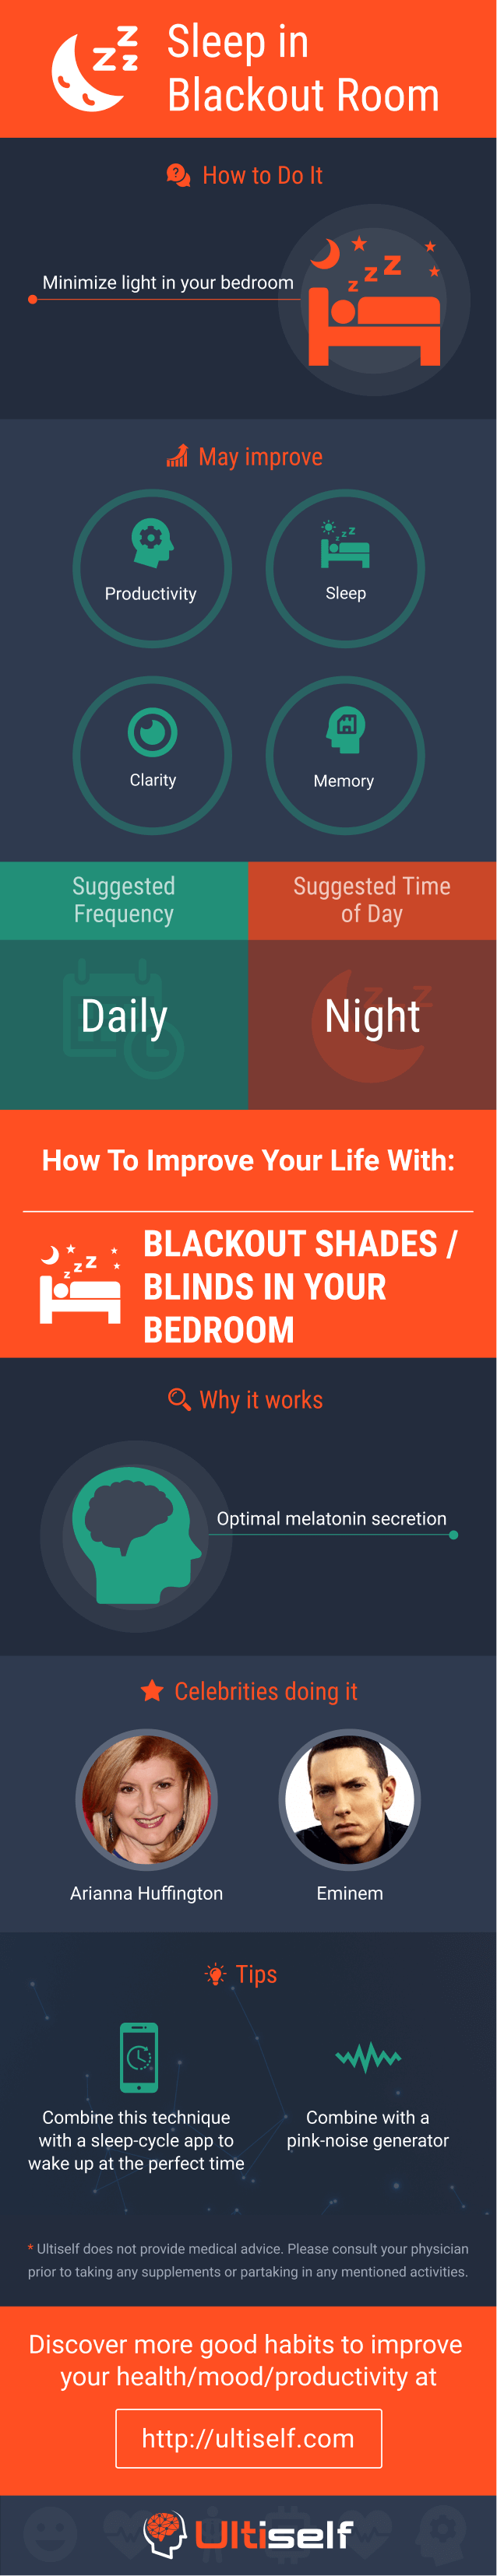 Sleep in blackout room infographic